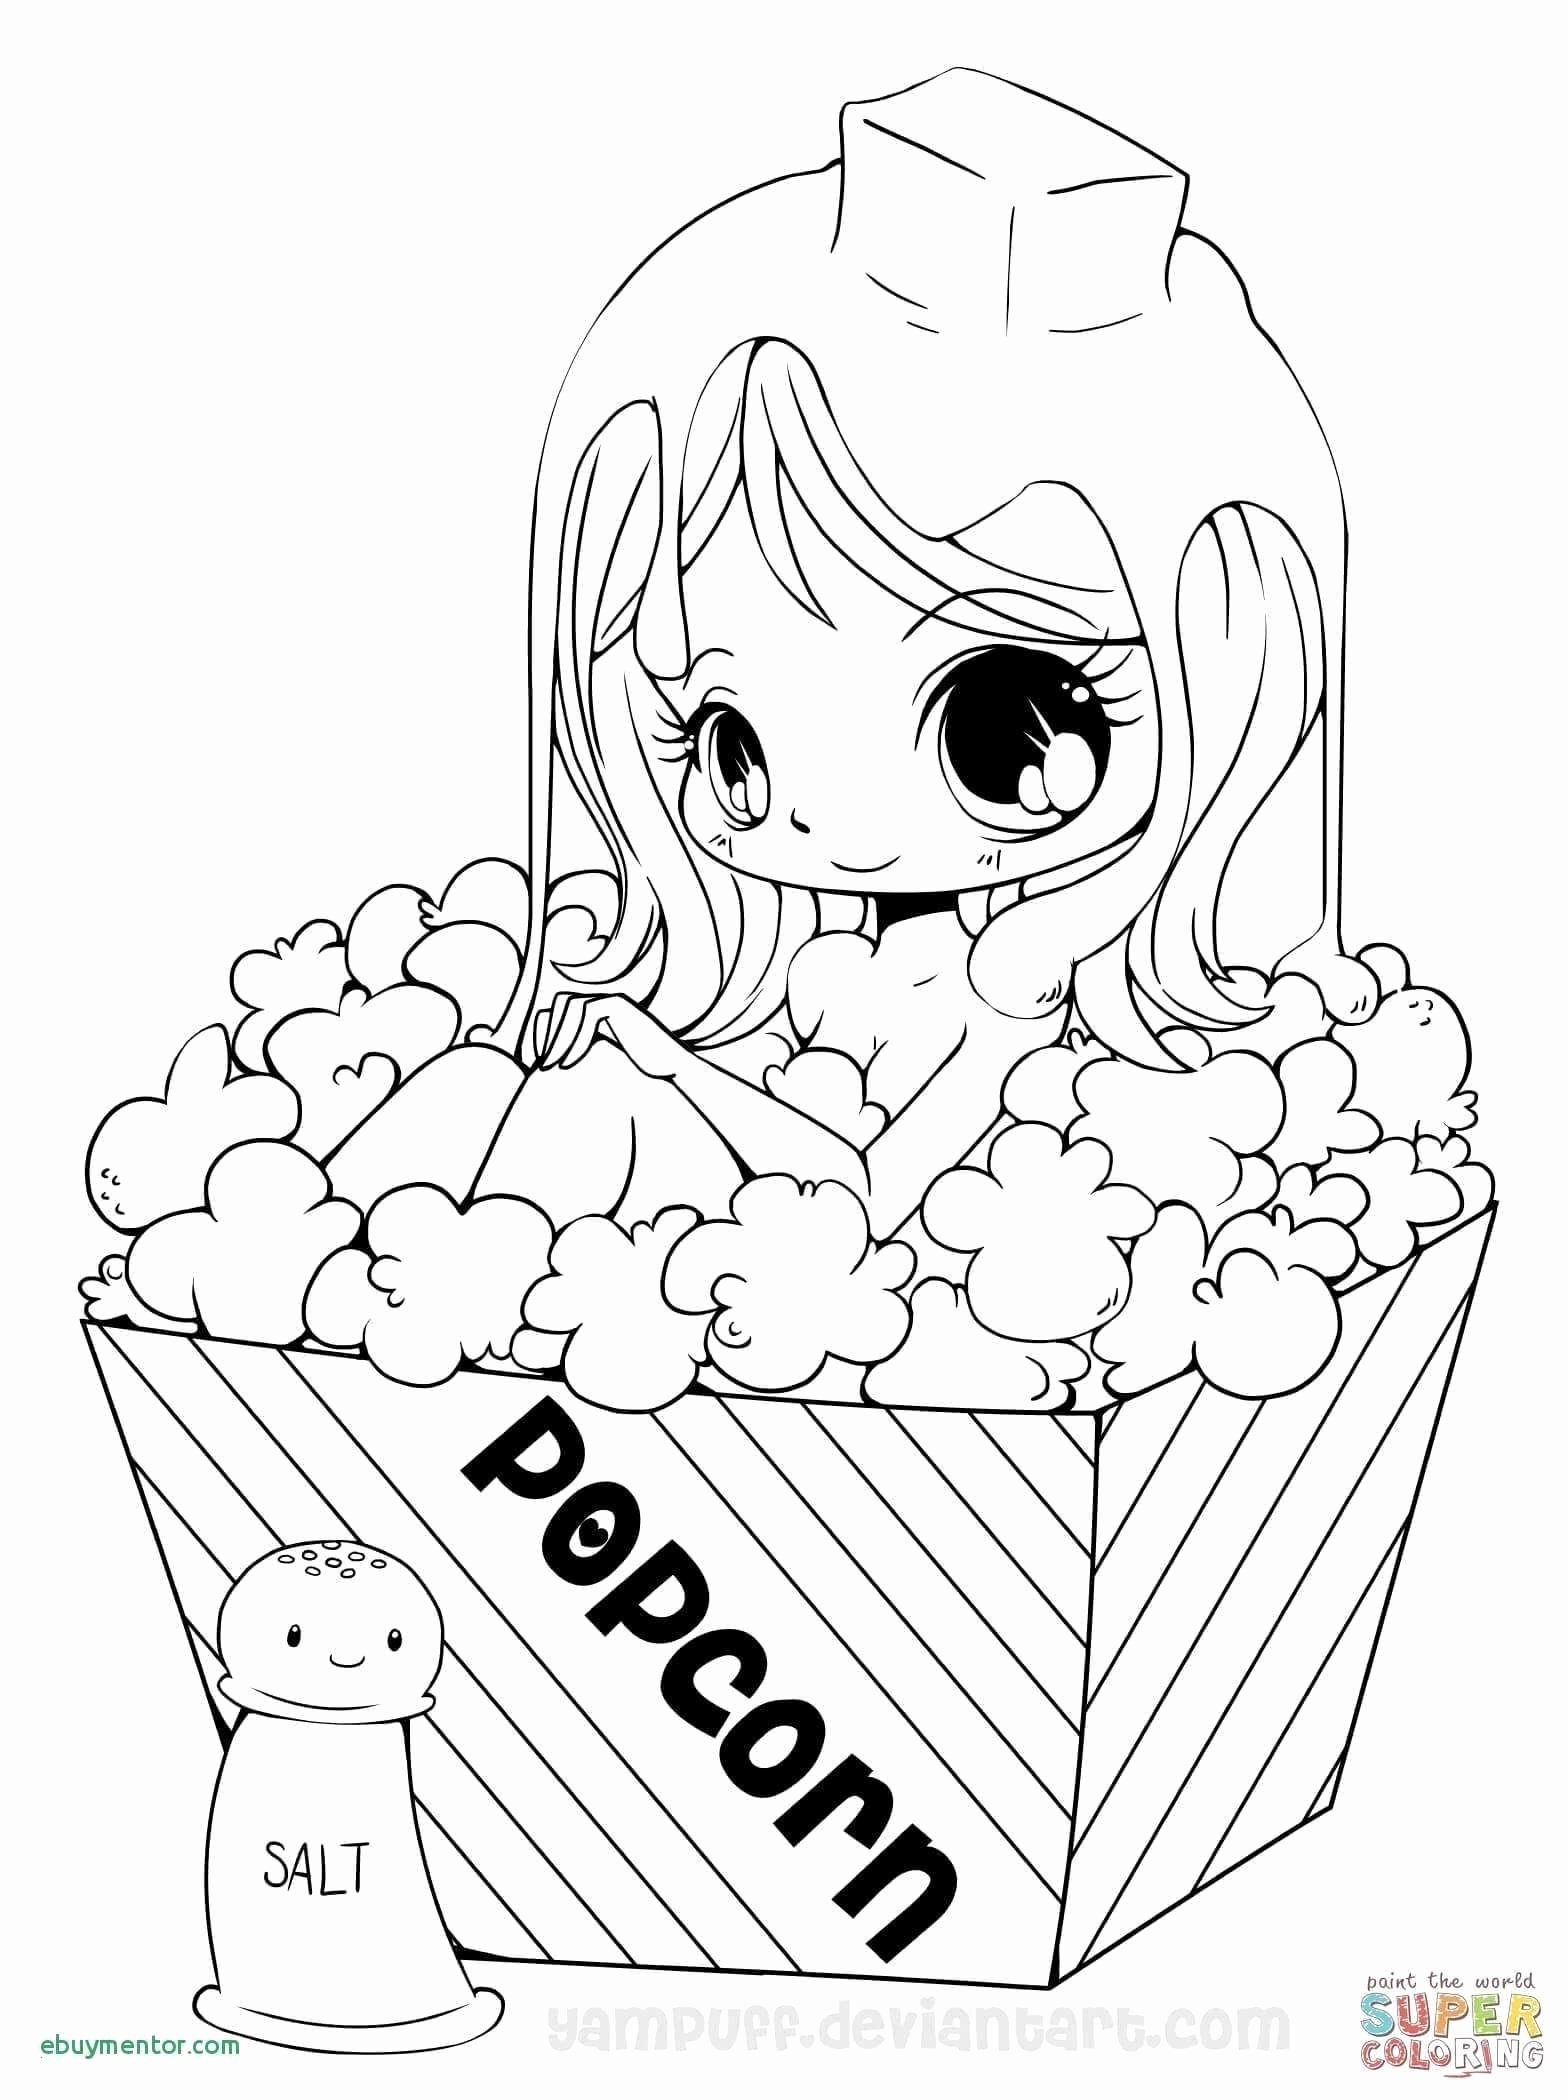 History Coloring Worksheets Beautiful Unique Cartoon Goat Coloring Page Trasporti Cool Coloring Pages Chibi Coloring Pages Thanksgiving Coloring Pages